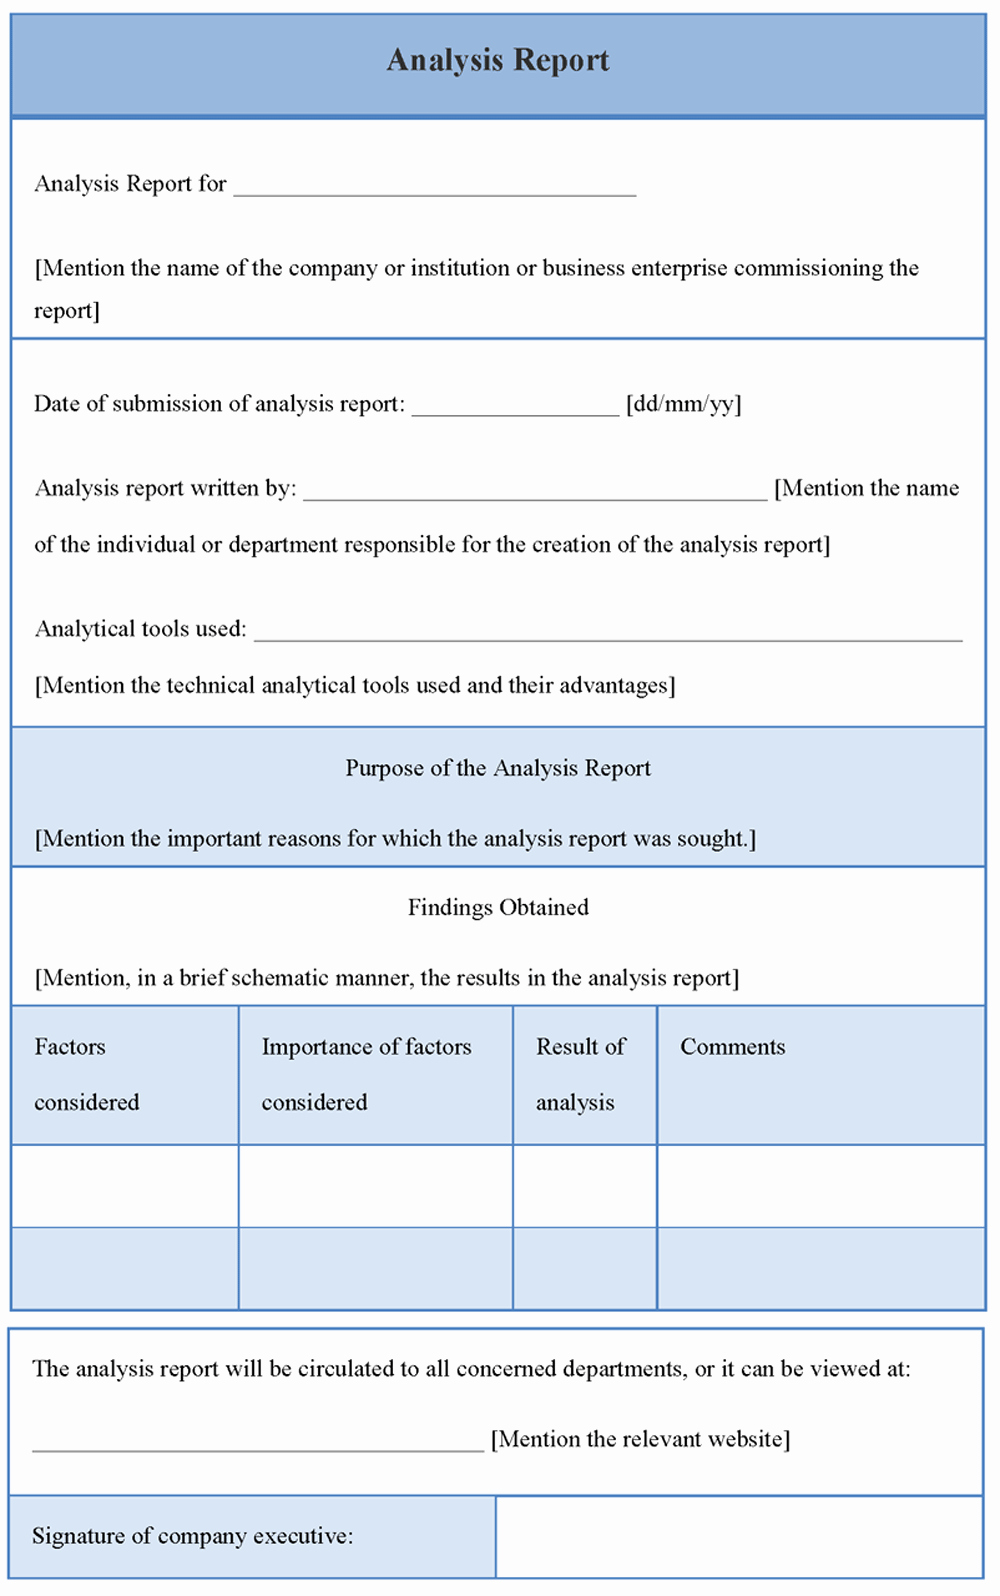 Data Analysis Report Template Best Of High Quality Blank Data Analysis Report Template and form